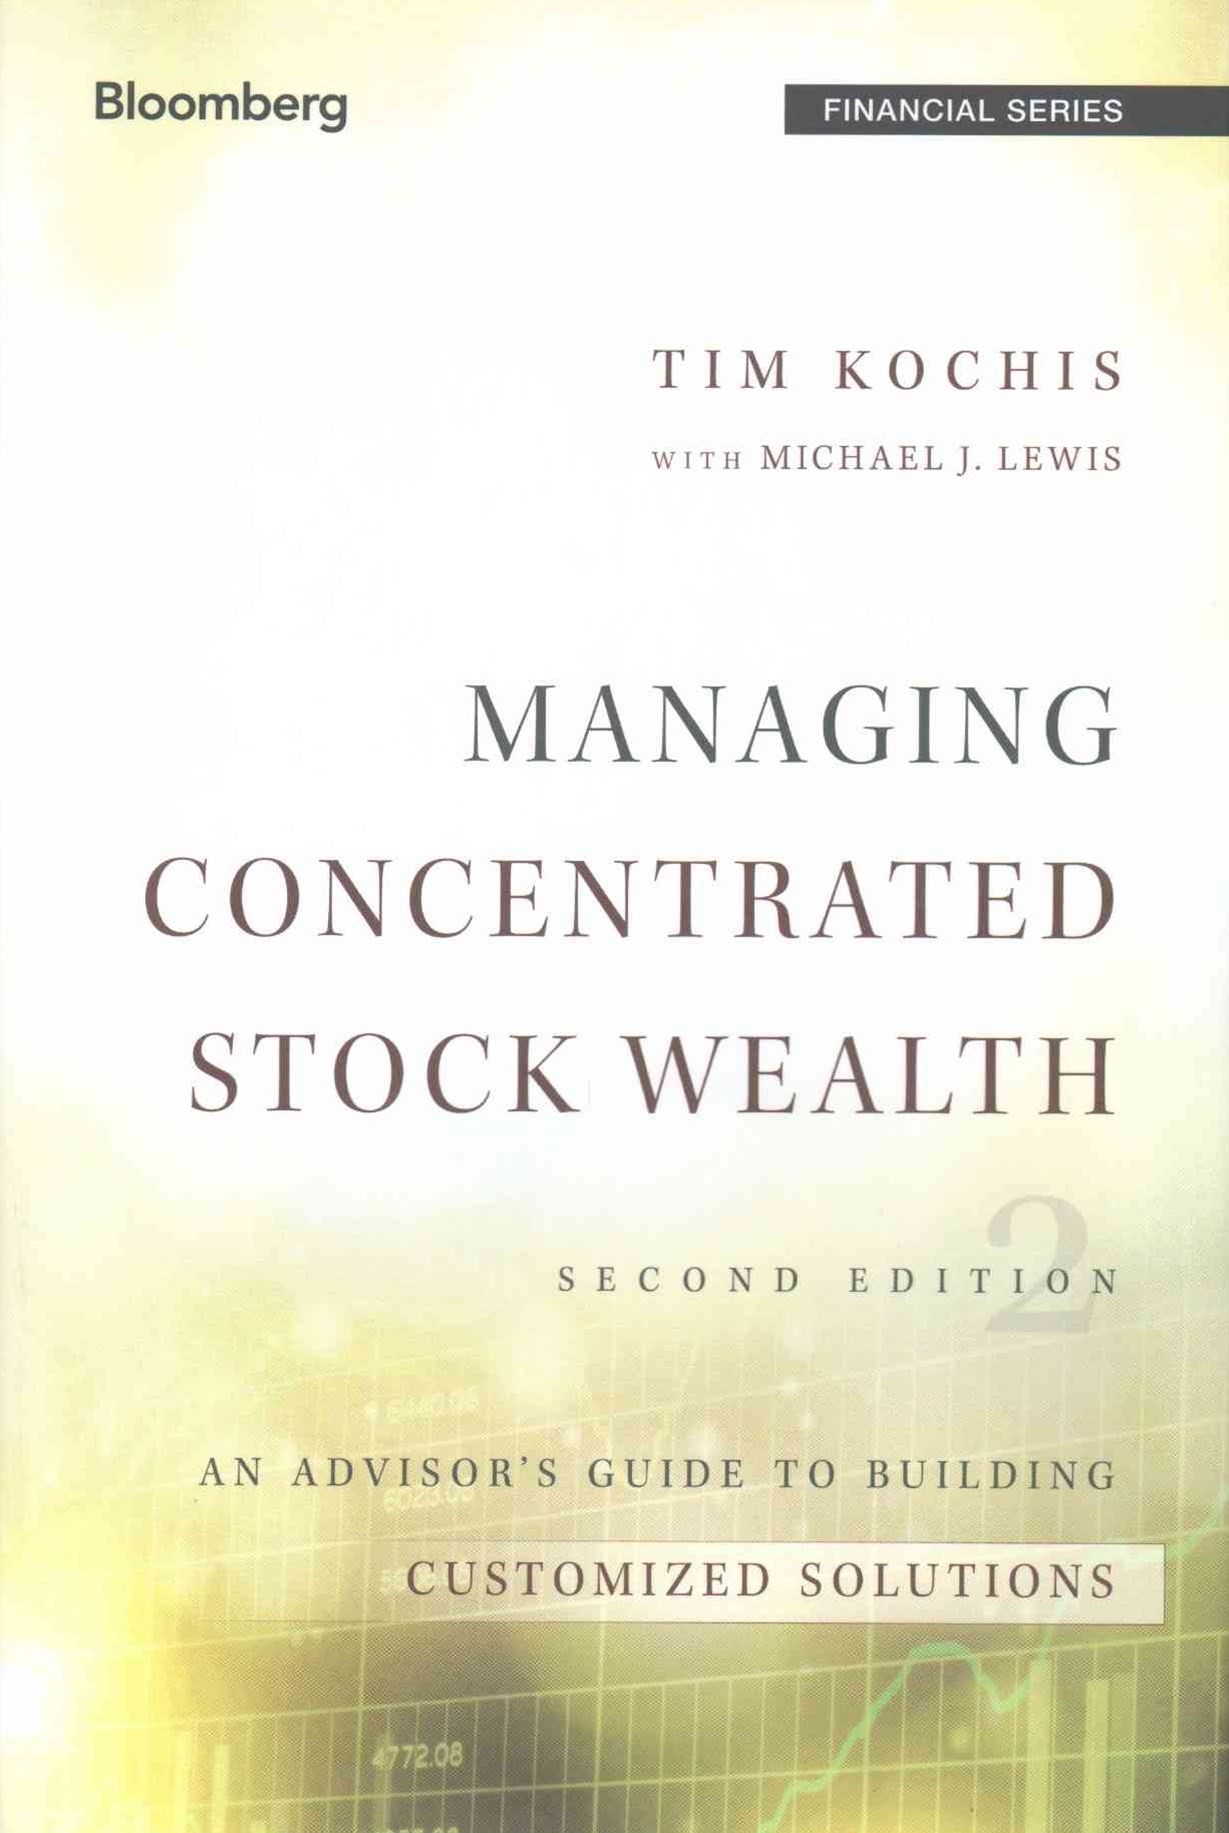 Managing Concentrated Stock Wealth, Second Edition